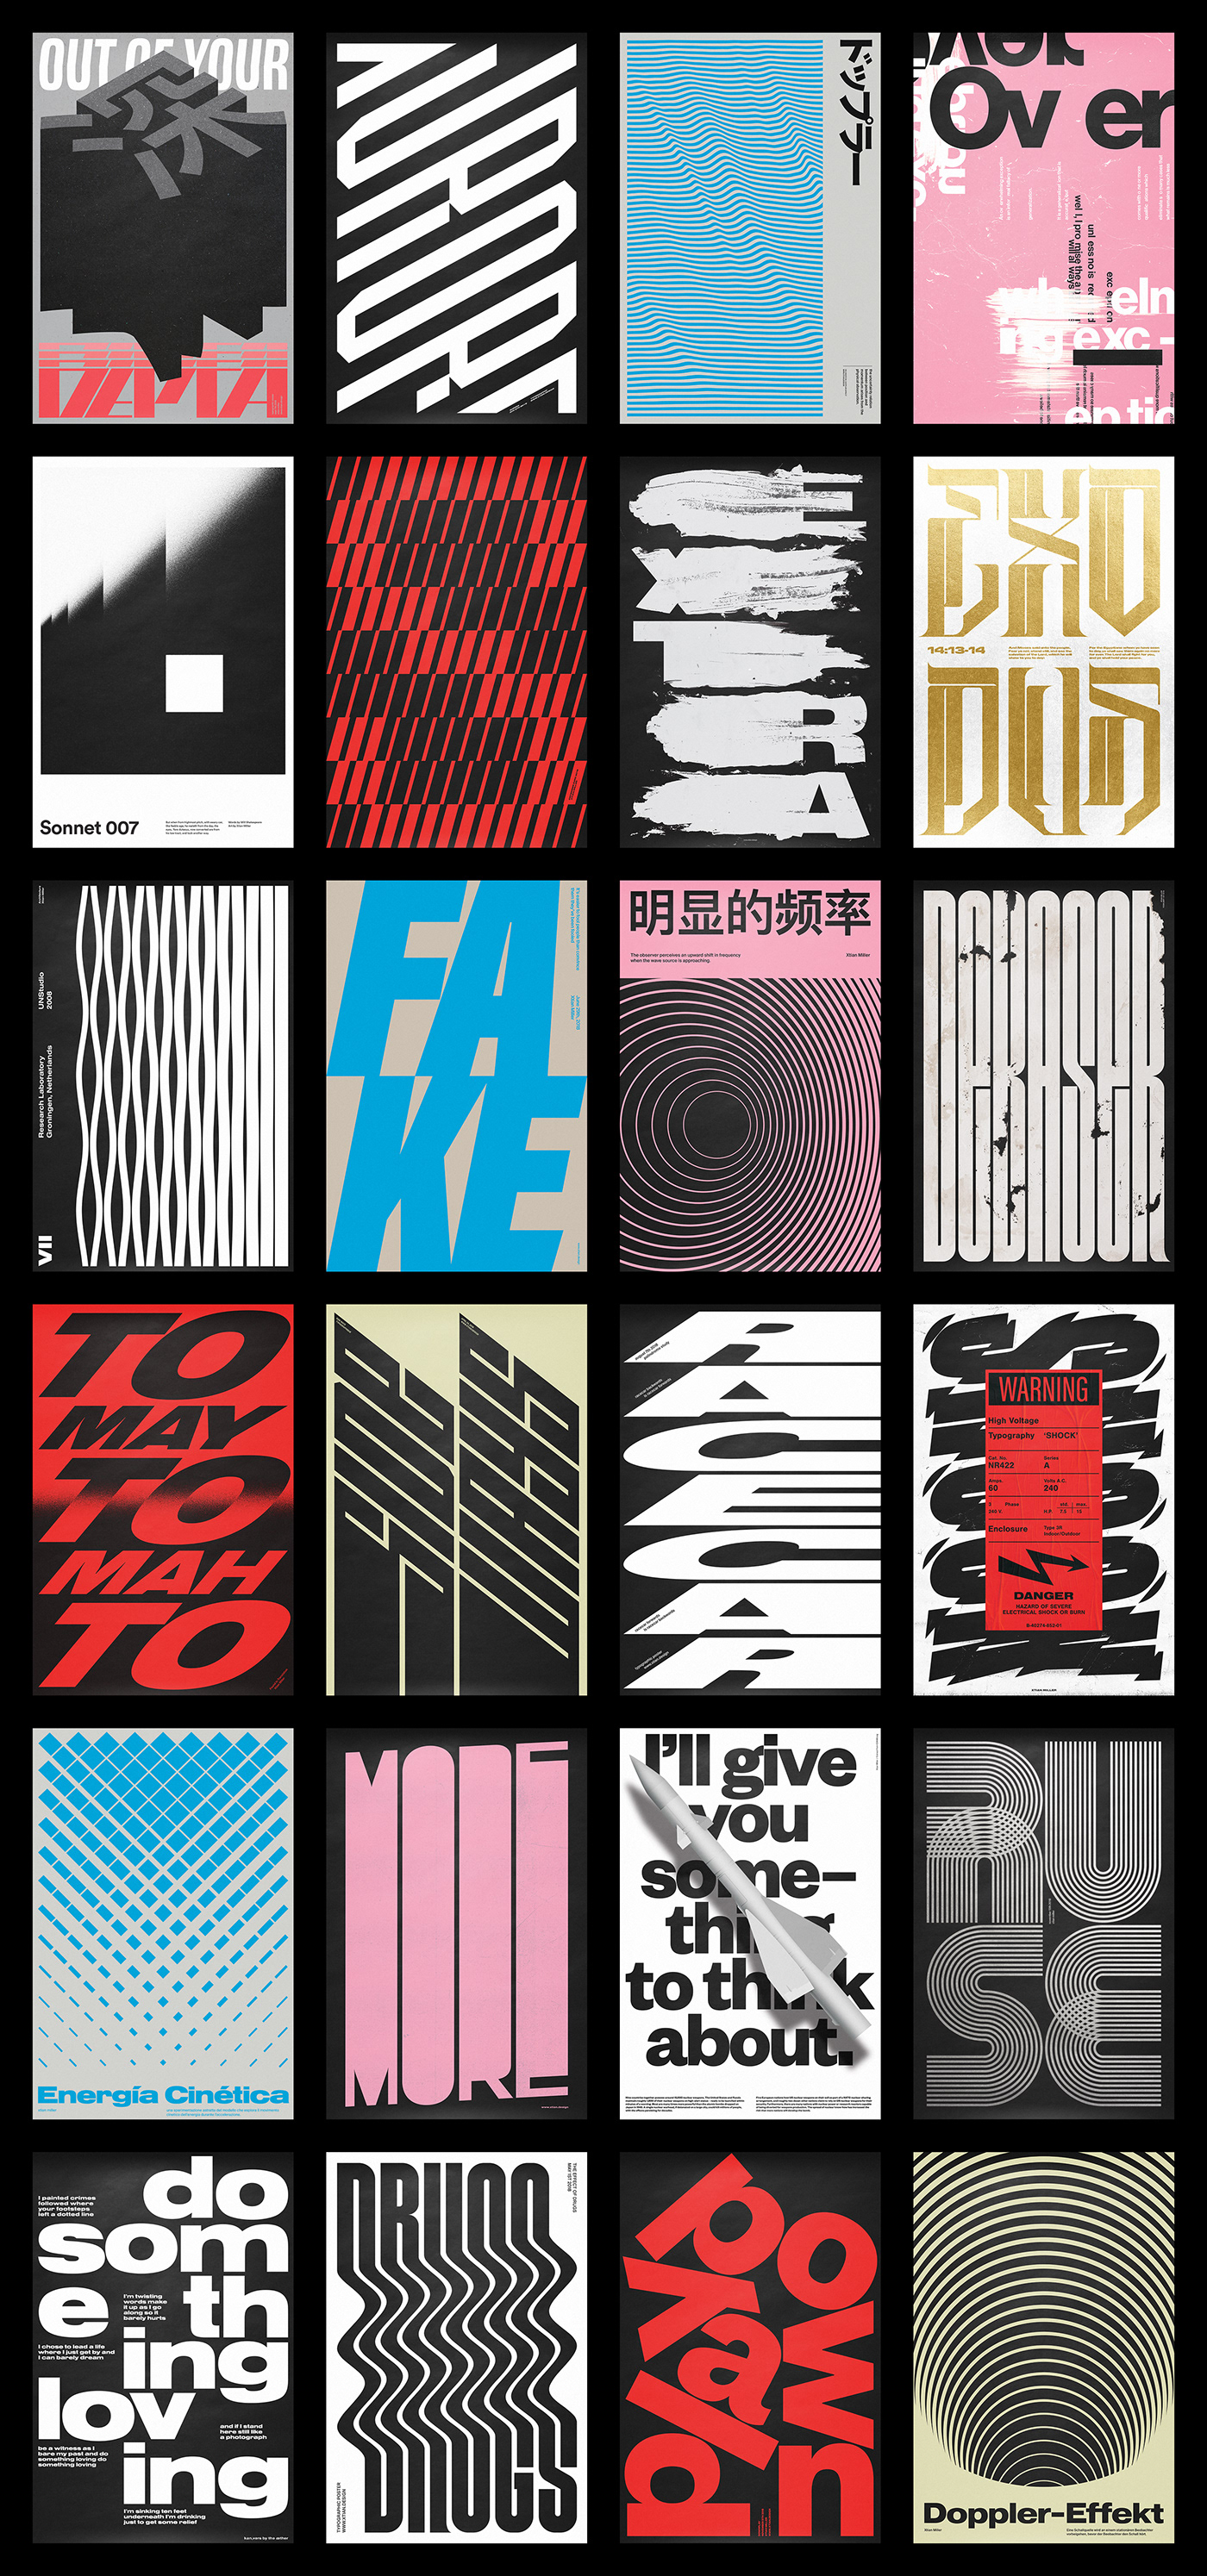 Selected posters from 2018 by Xtian Miller